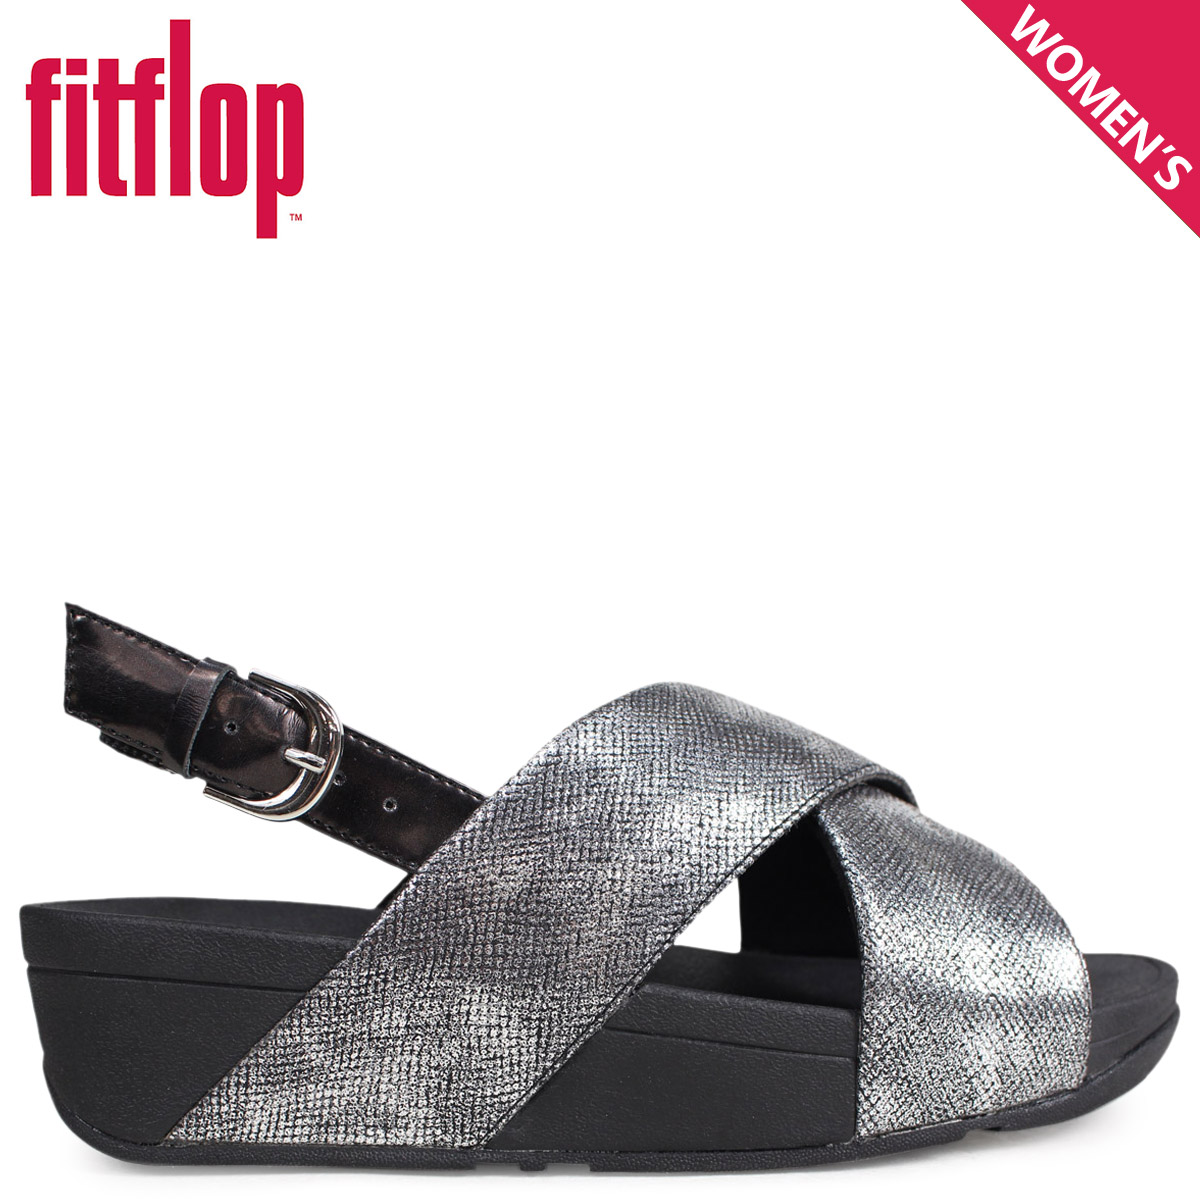 5e01eed3b836 Fitting FLOP sandals FitFlop Lulu LULU CROSS BACK-STRAP SANDALS SHIMMER- PRINT Lady s K54 black  4 4 Shinnyu load